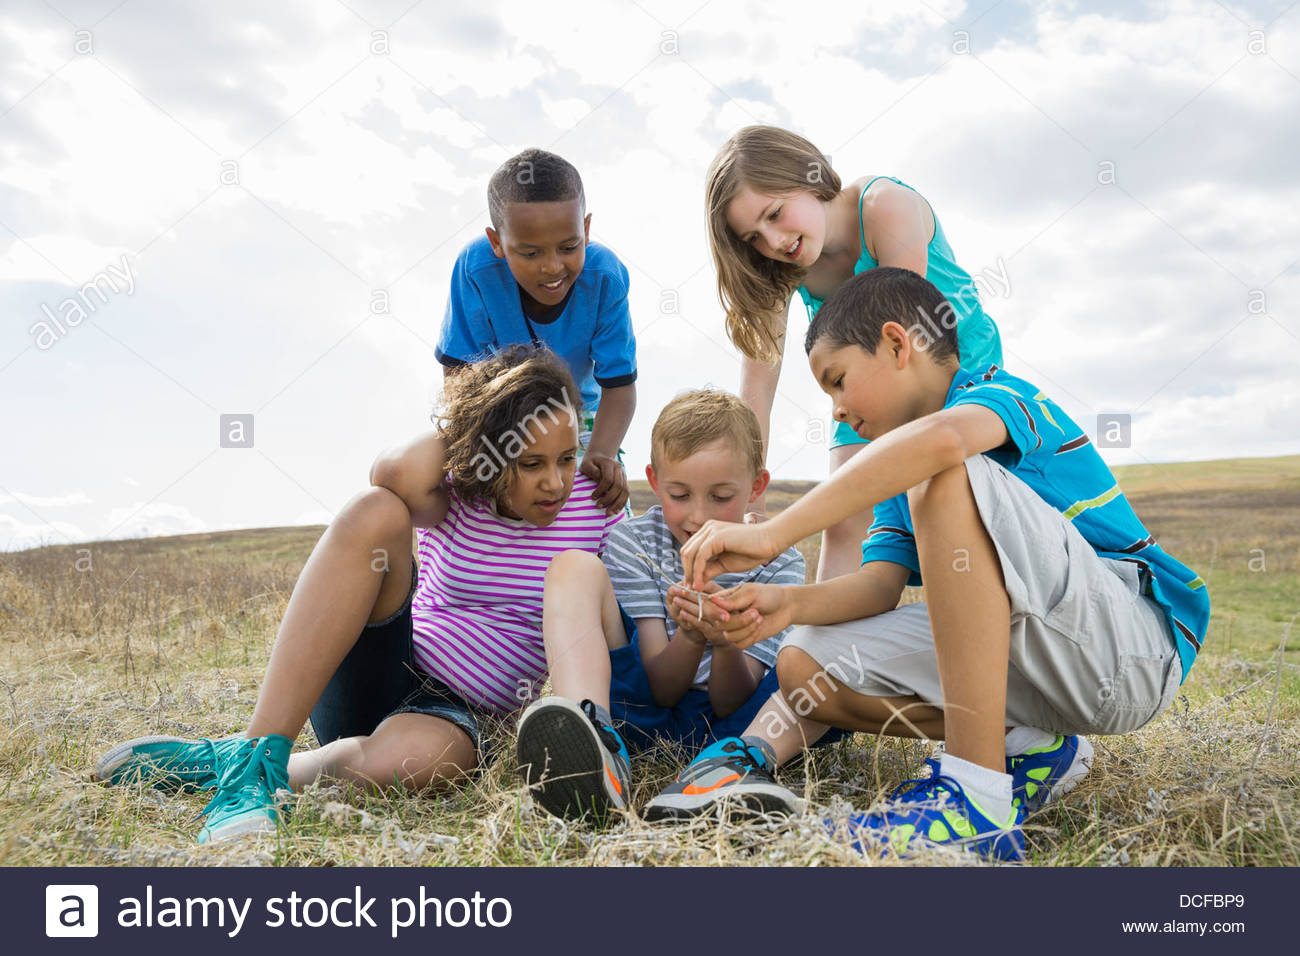 Schoolchildren exploring insects during field study - Stock Image